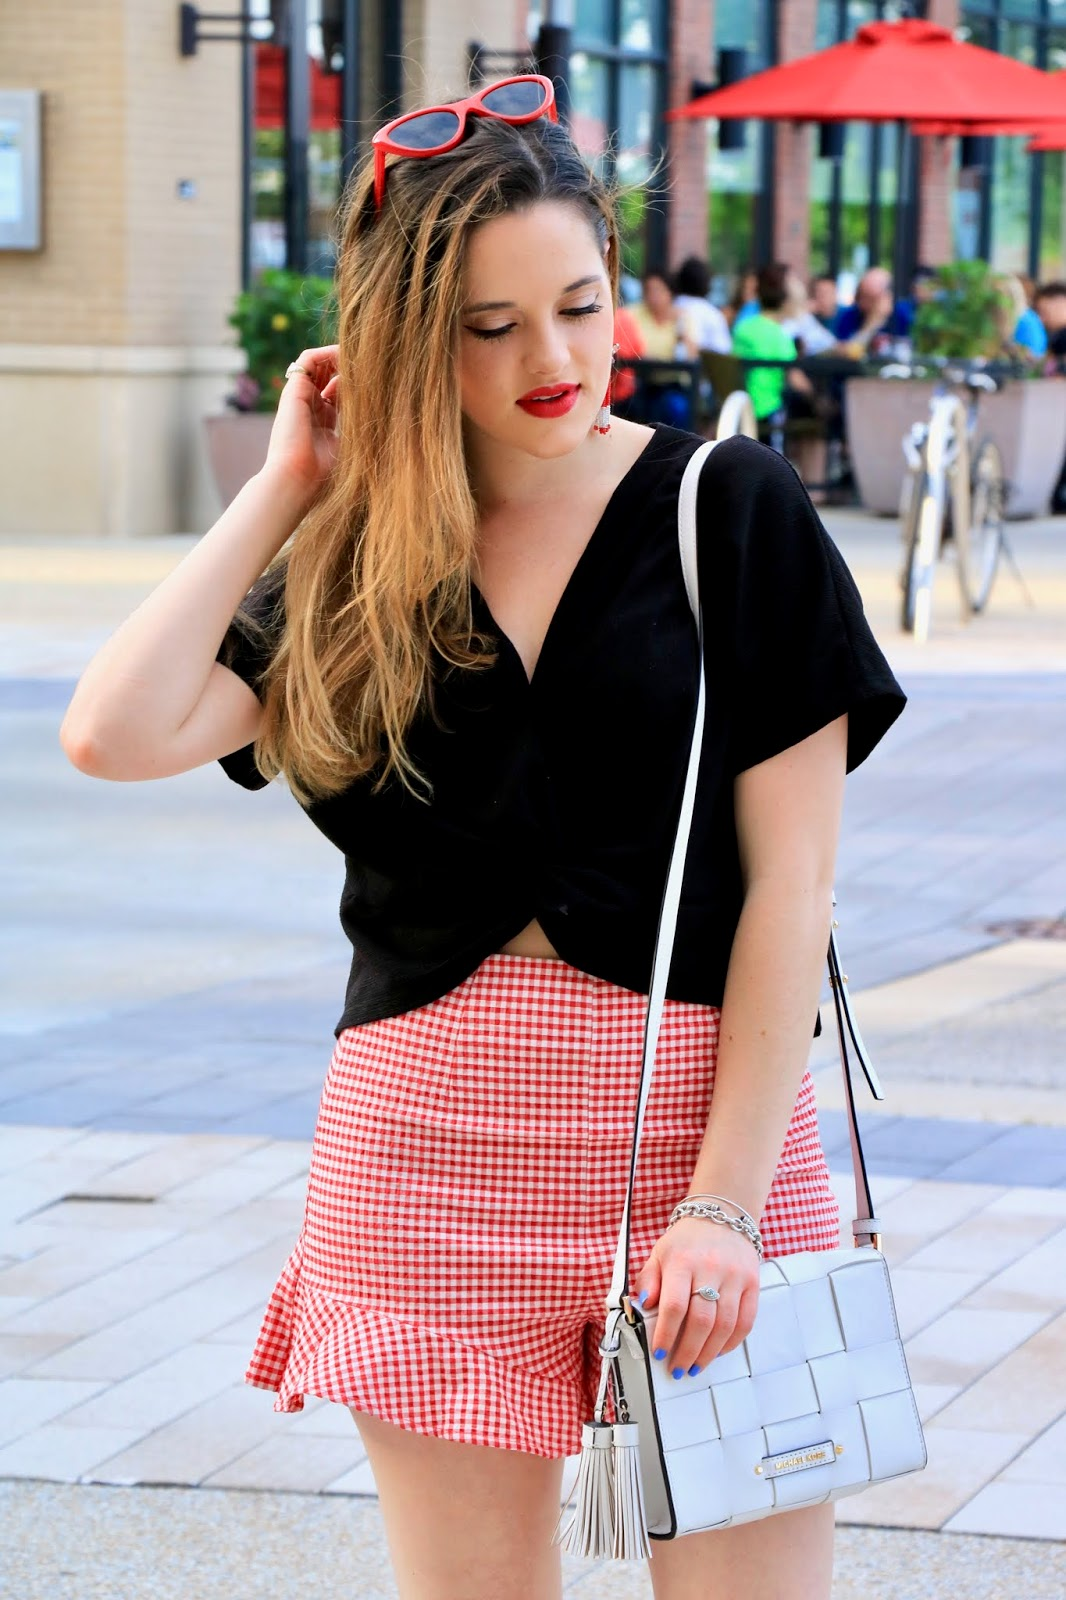 Nyc fashion blogger Kathleen Harper's summer date night outfit ideas